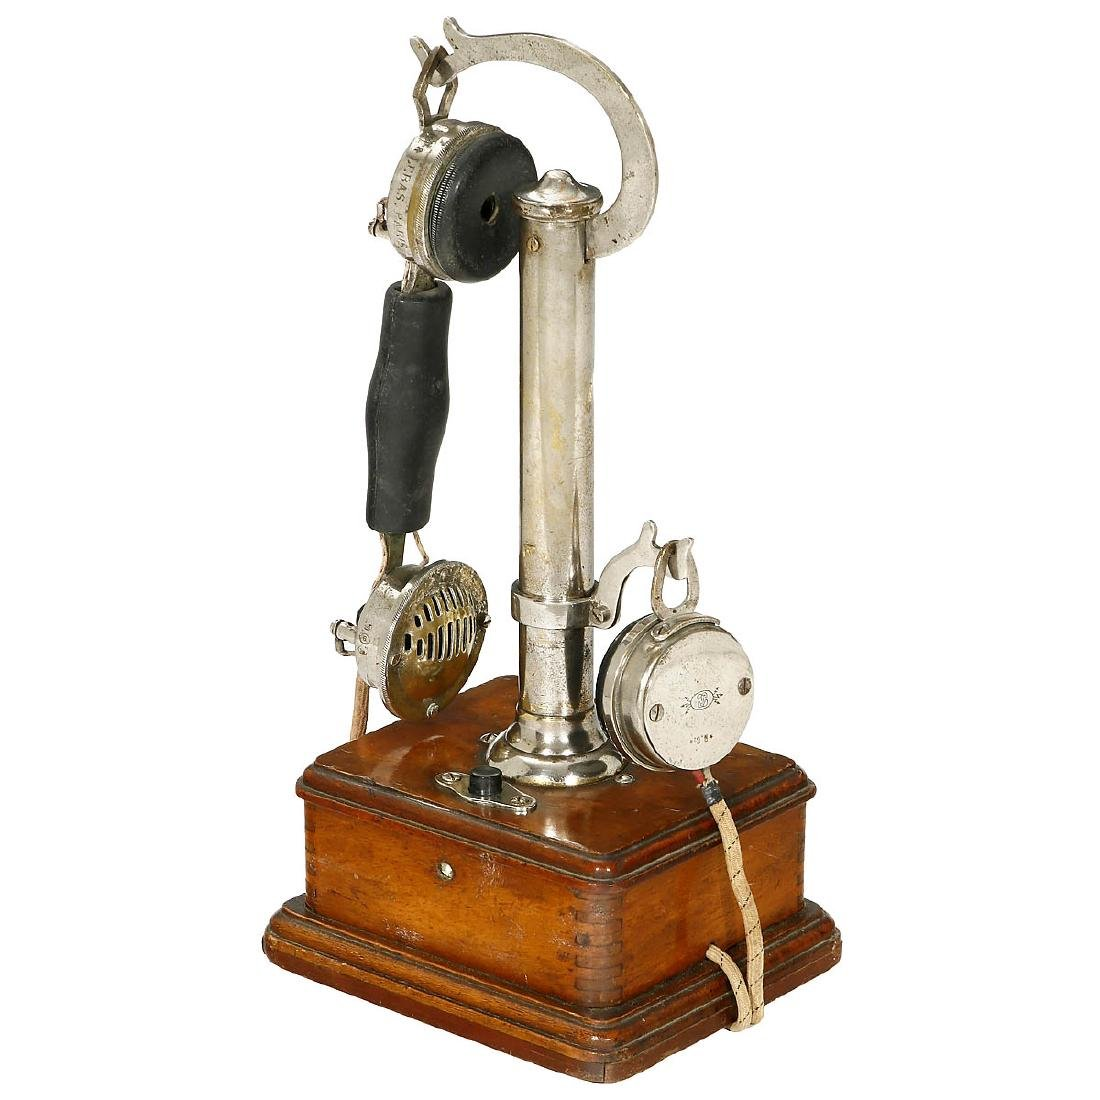 French Table Telephone by Picart Lebas, 1911